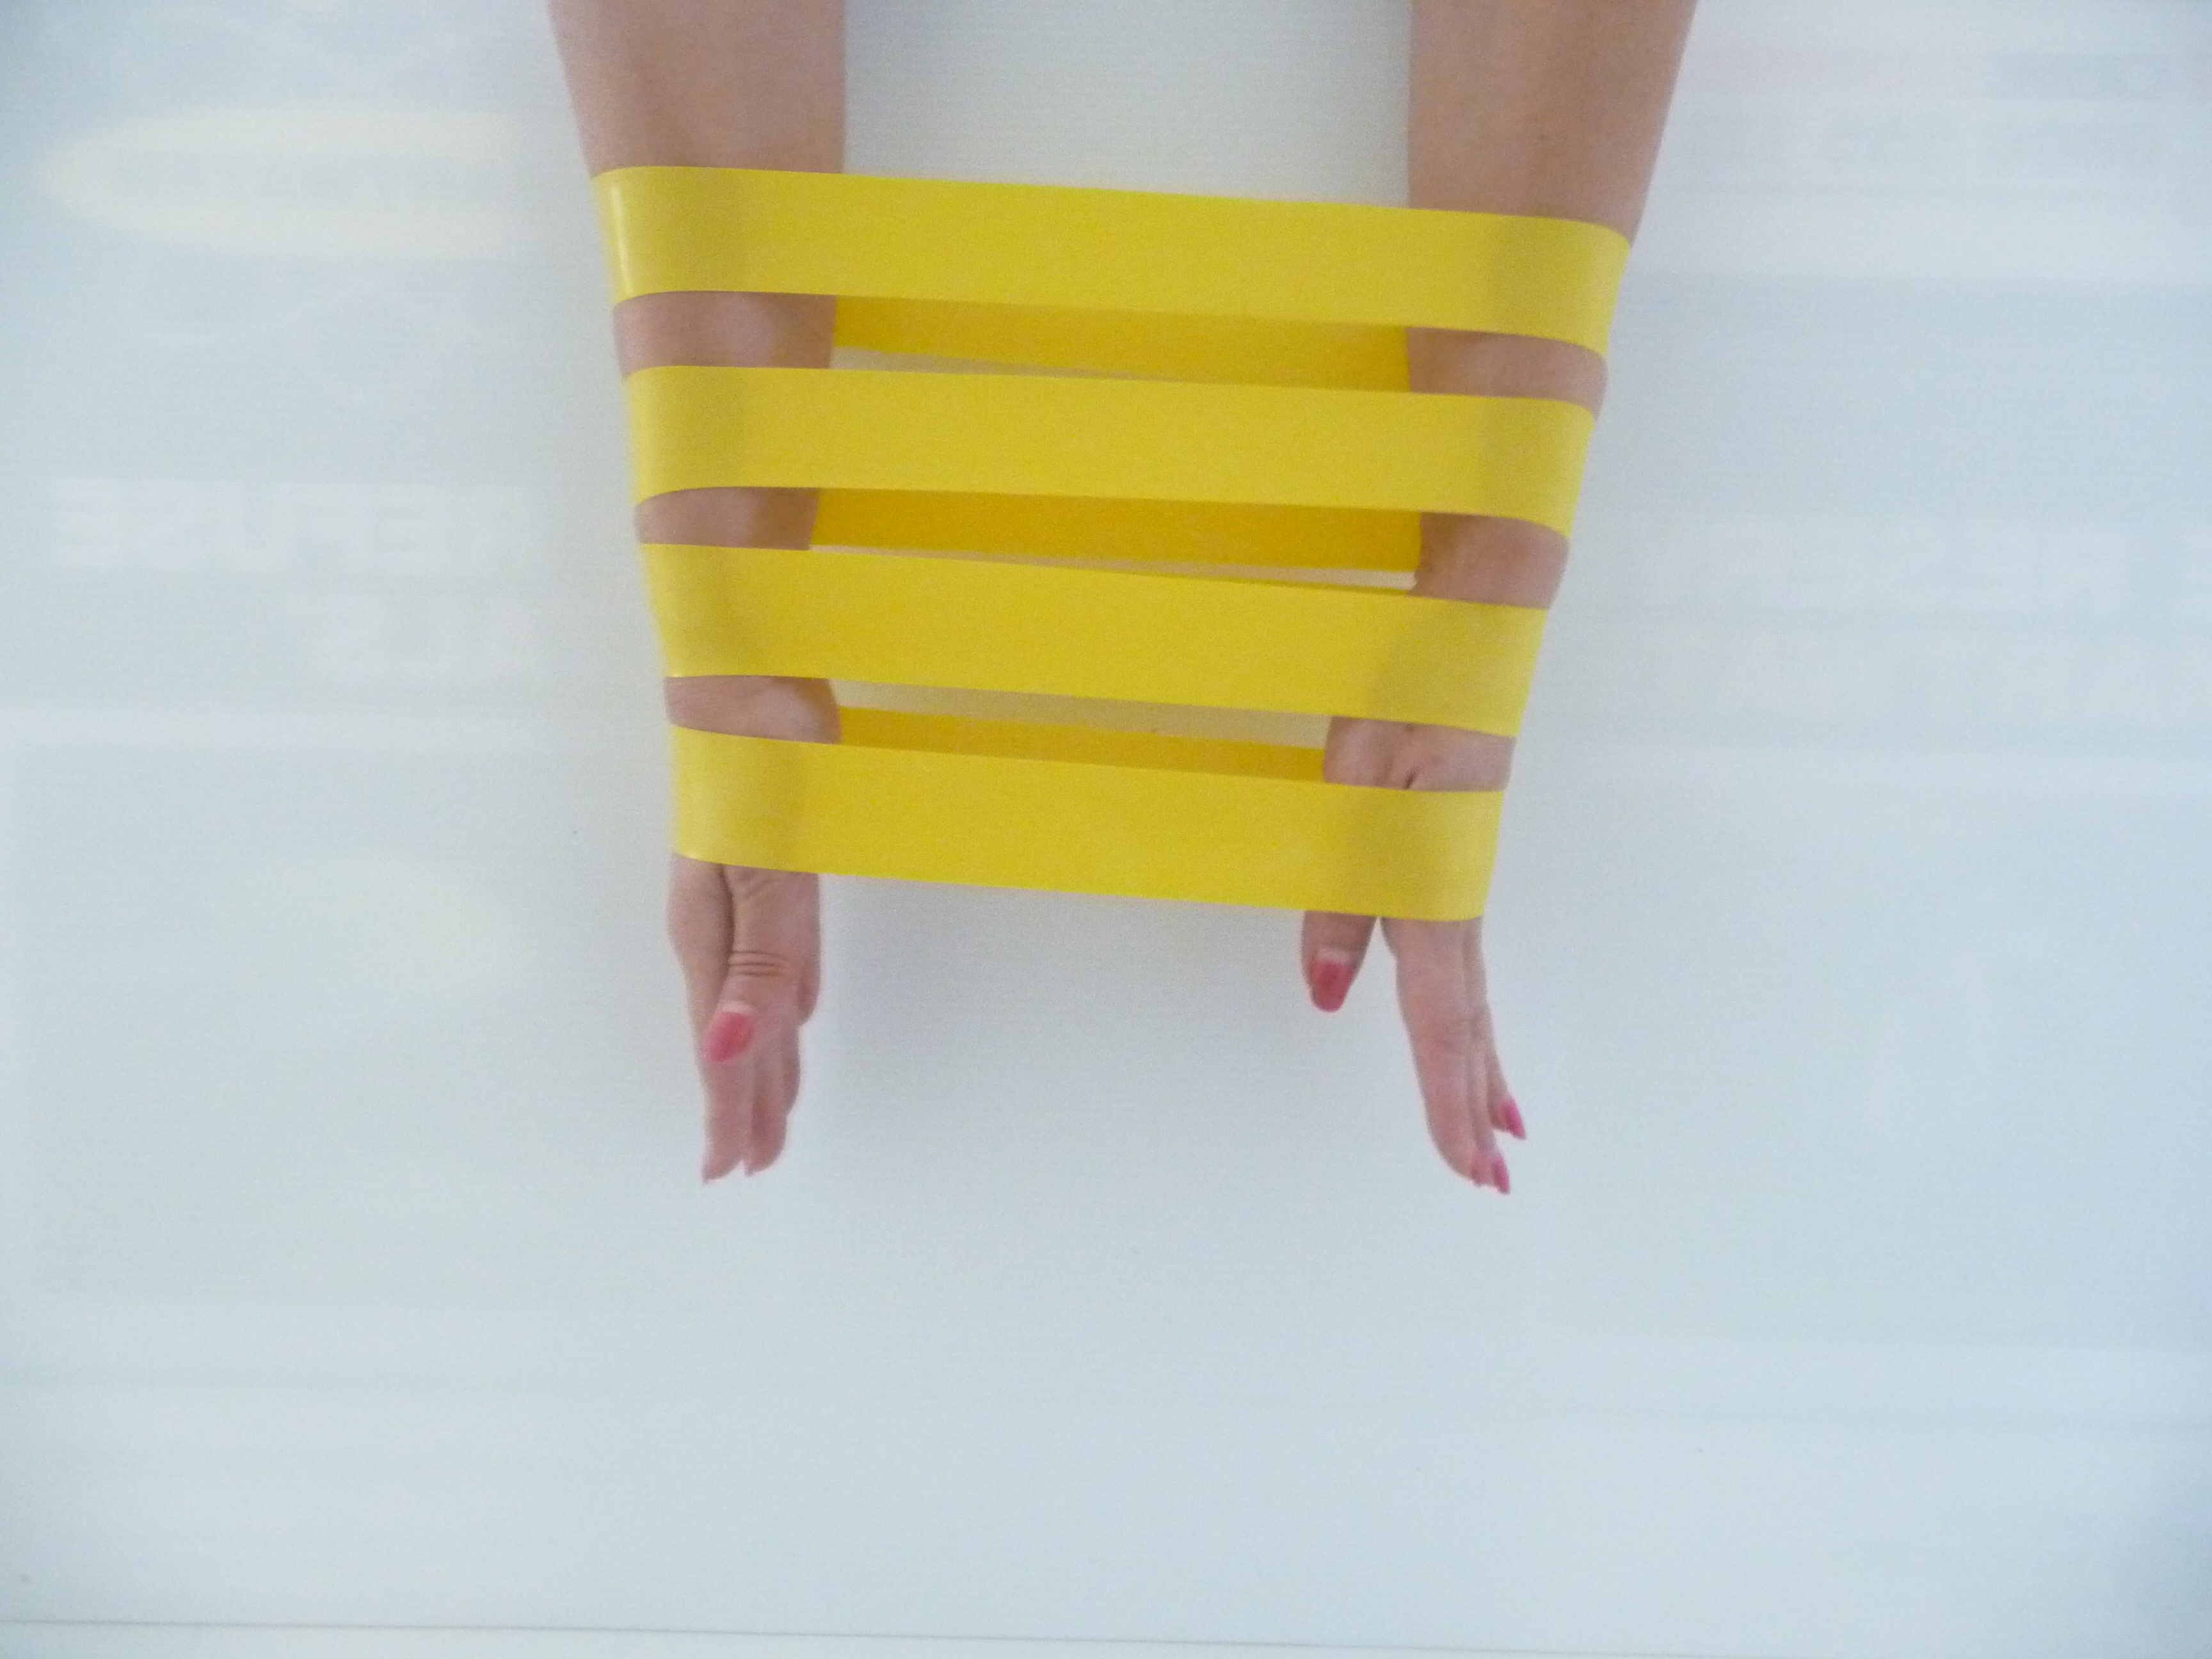 Exercise resistance Latex band 20 pack Yellow for Rehab